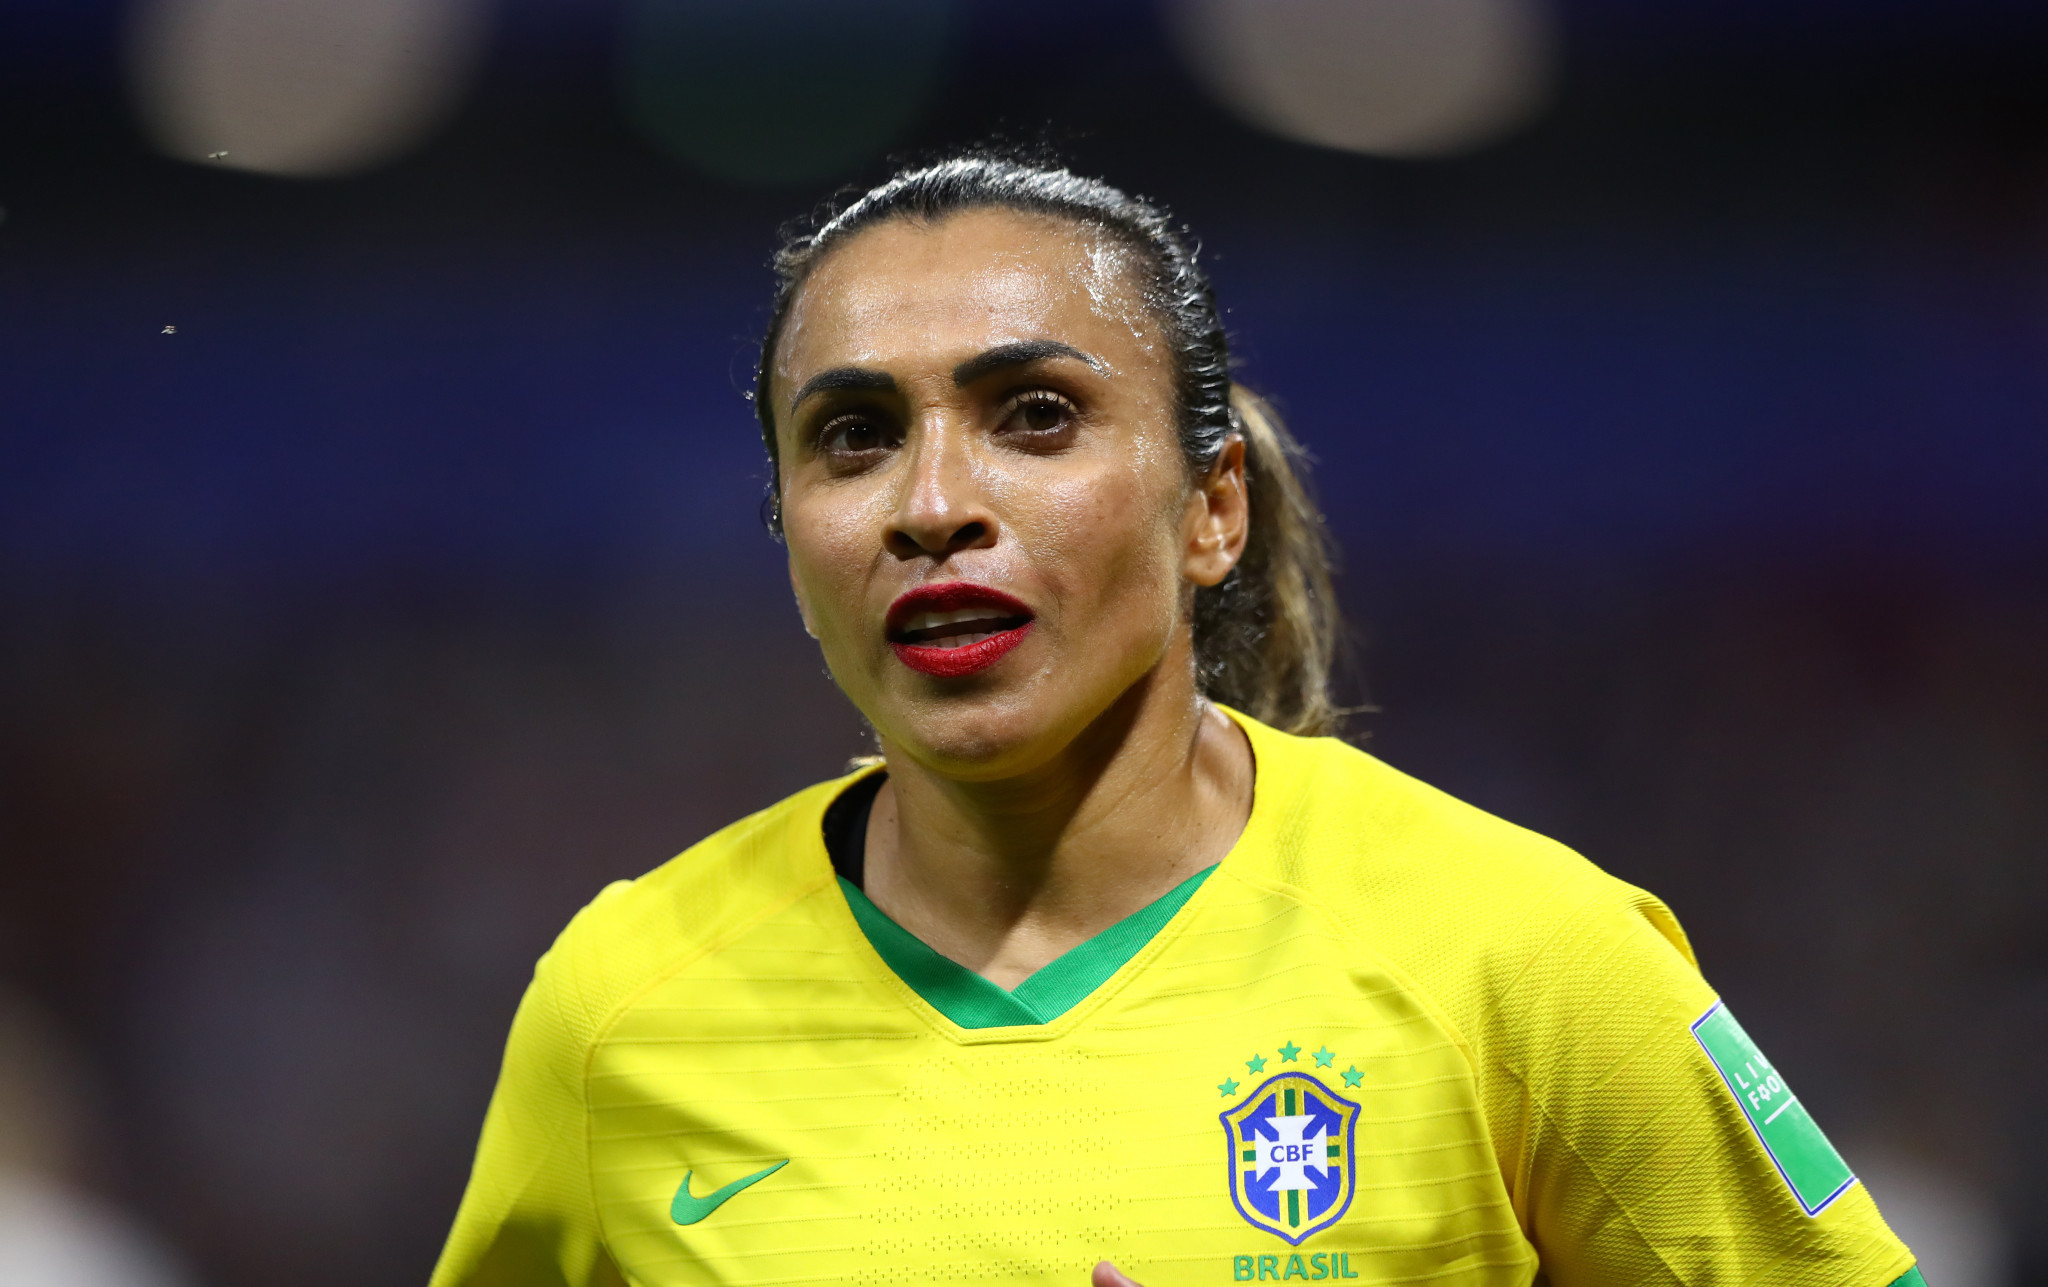 Brazilian footballer Marta also participated in the discussion hosted by UN75, calling for women's sport to not be forgotten post the coronavirus pandemic ©Getty Images